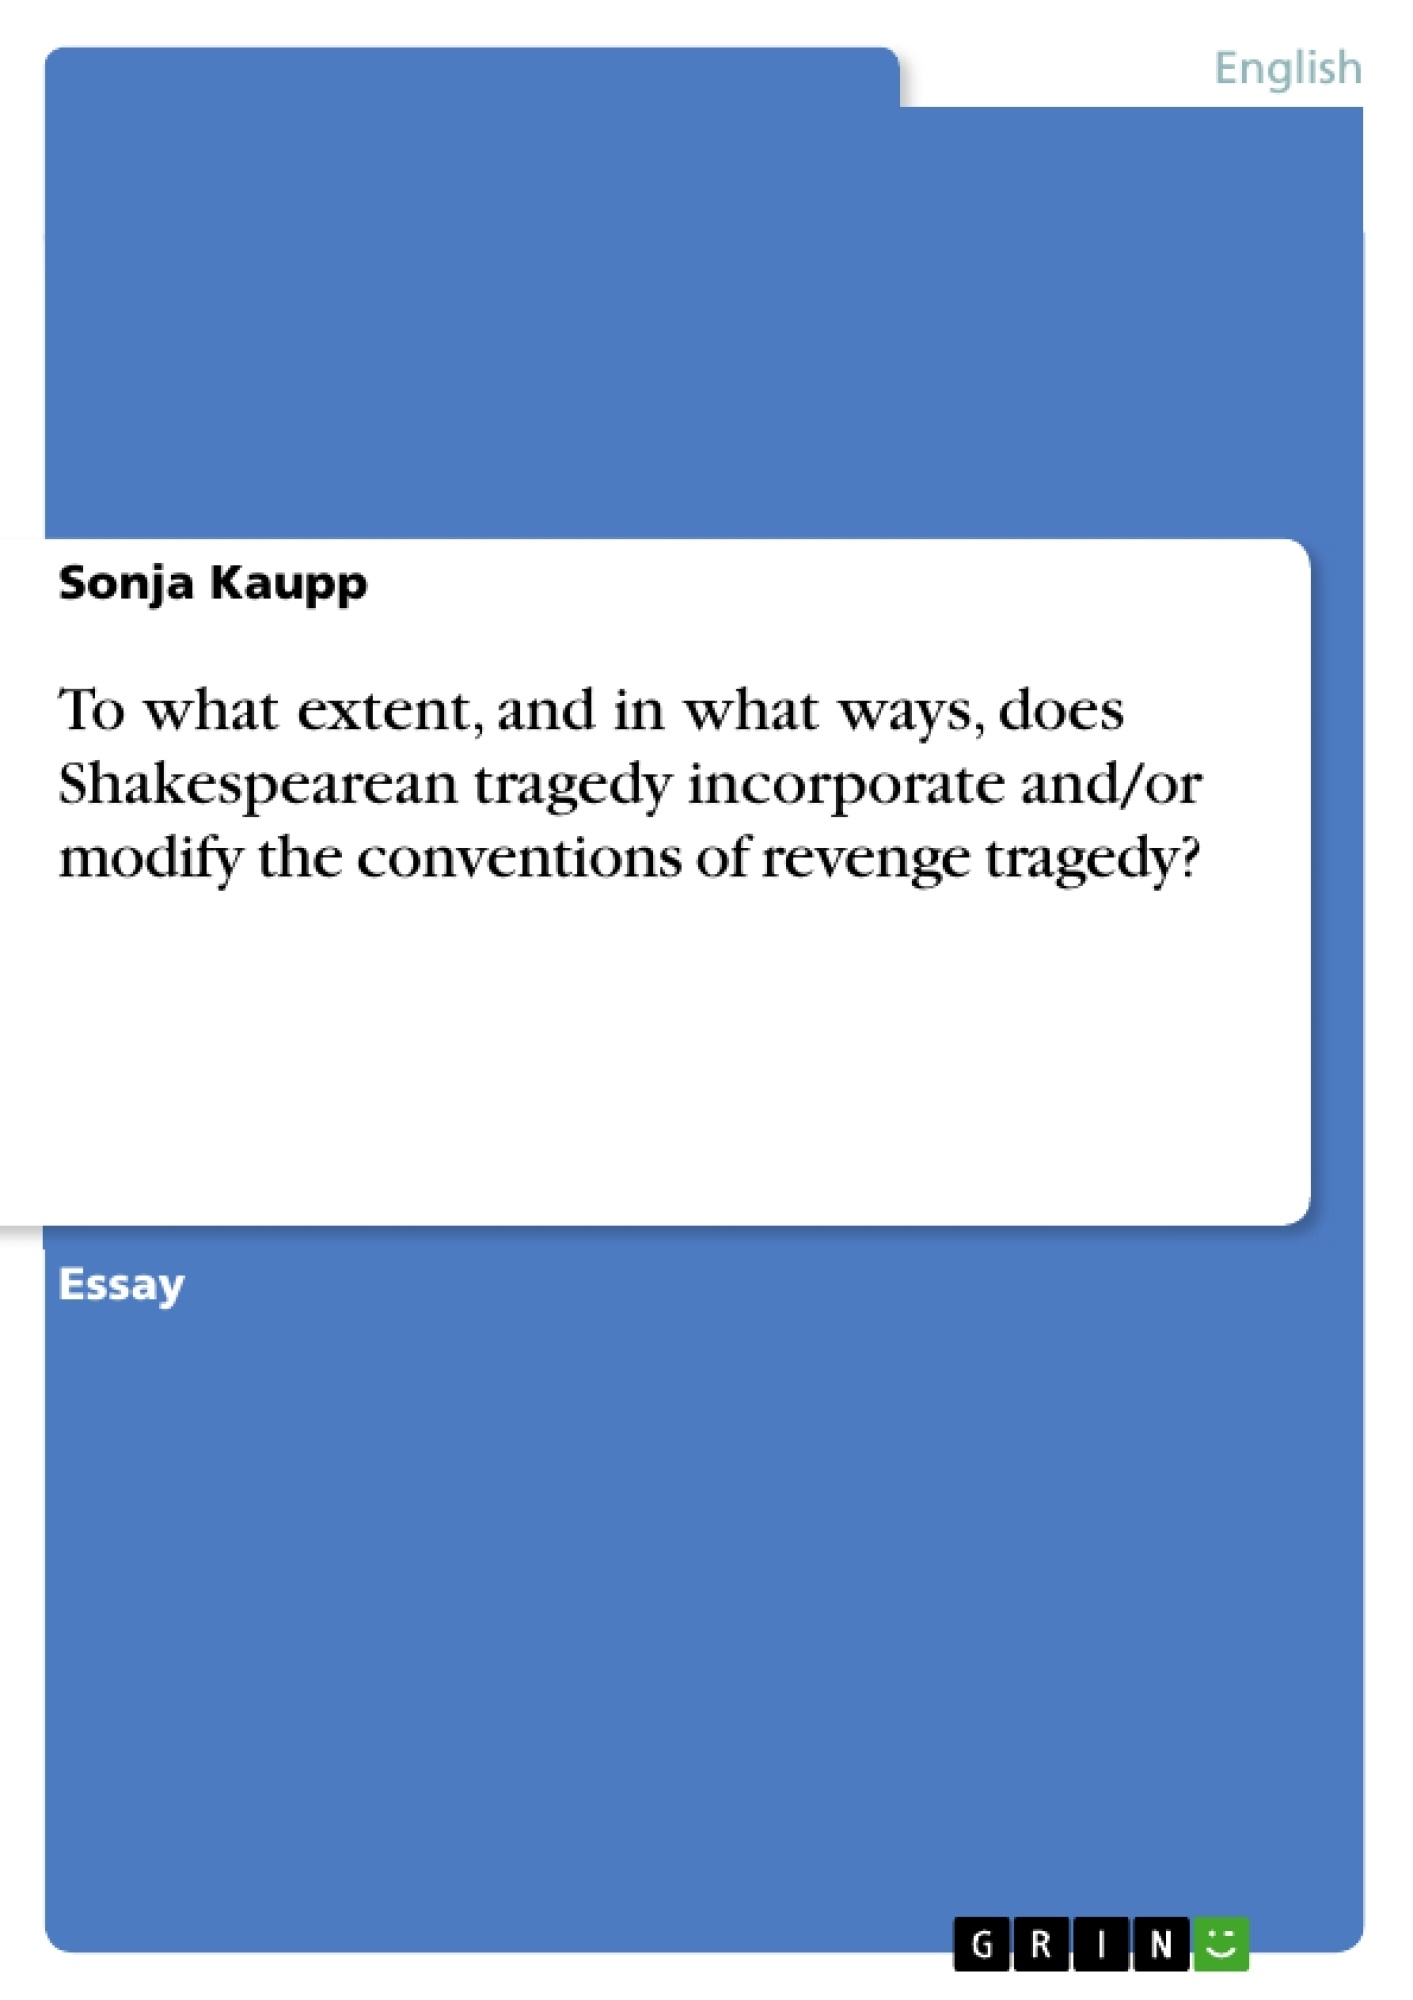 20 Great Ideas for Term Paper Topics on Shakespeare